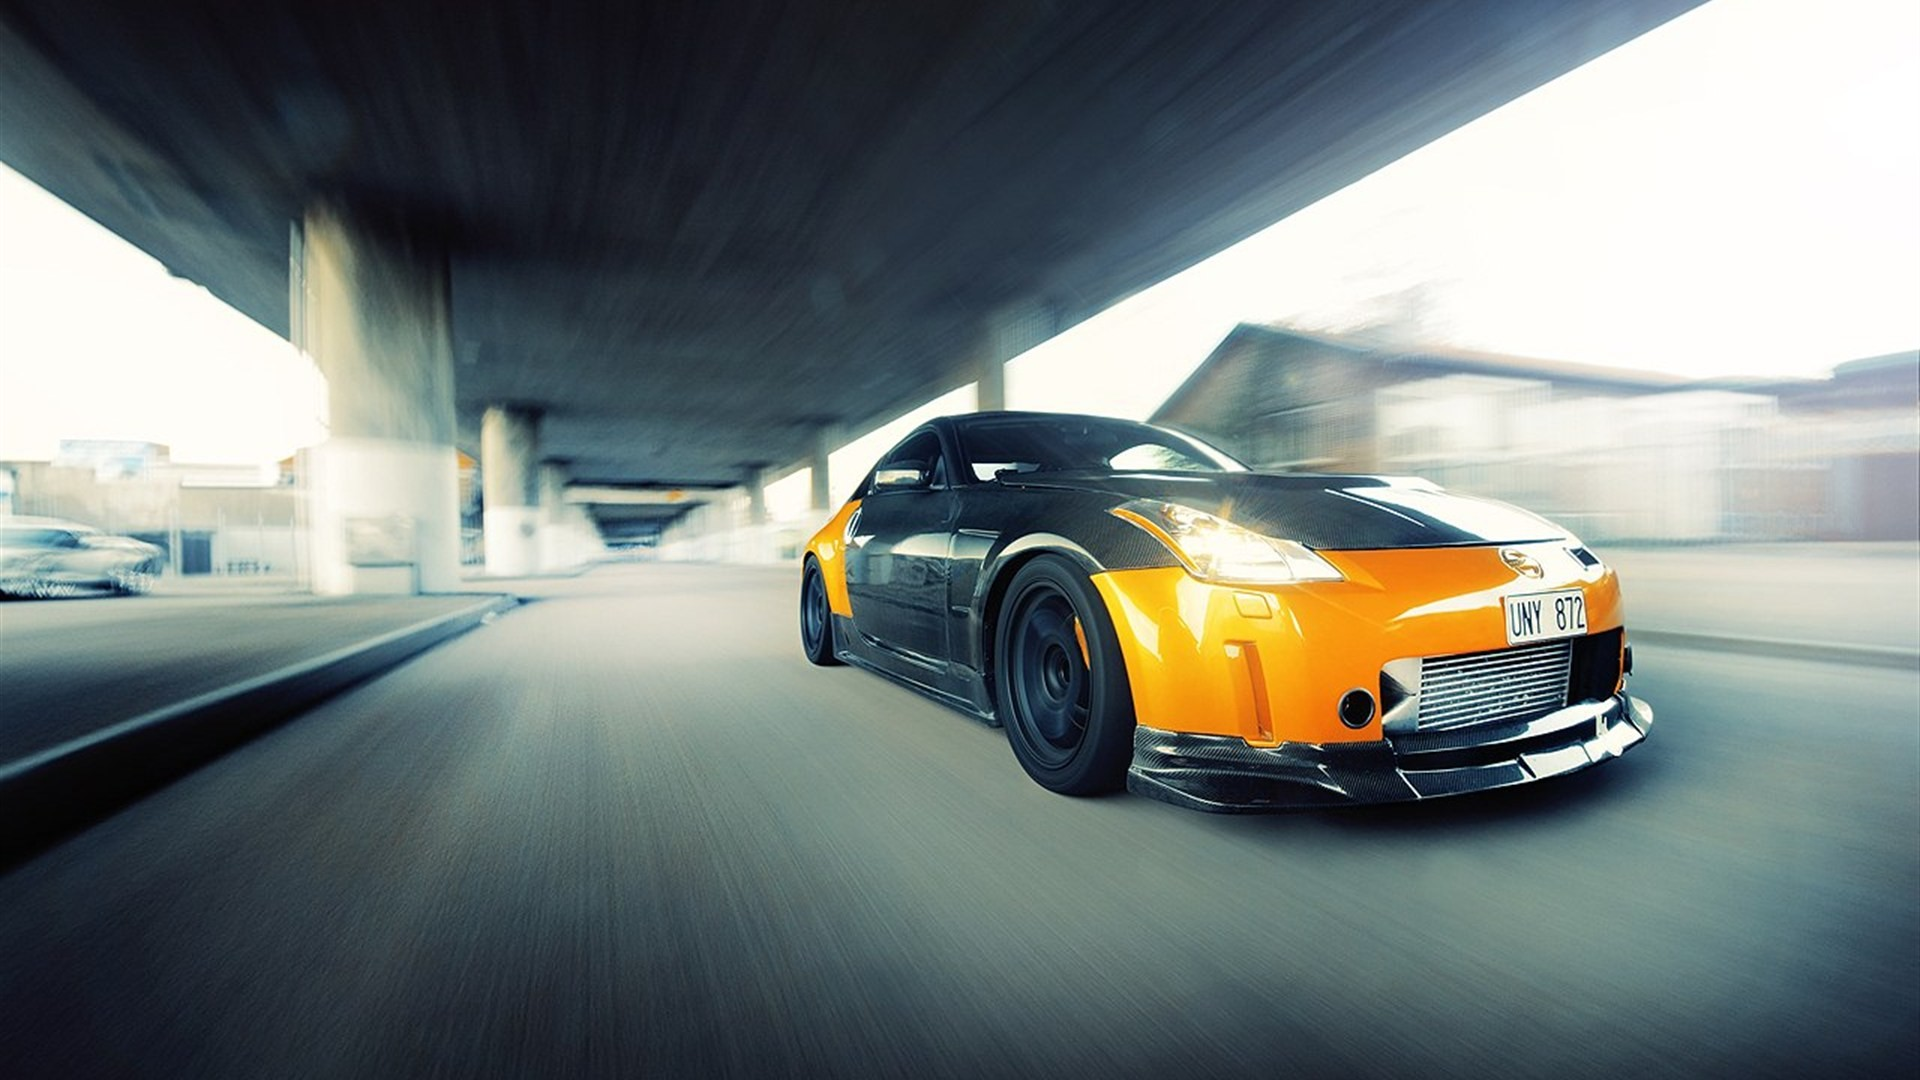 1920x1080 ... nissan 350z, car, motion picture, road, speeding, auto wallpaper